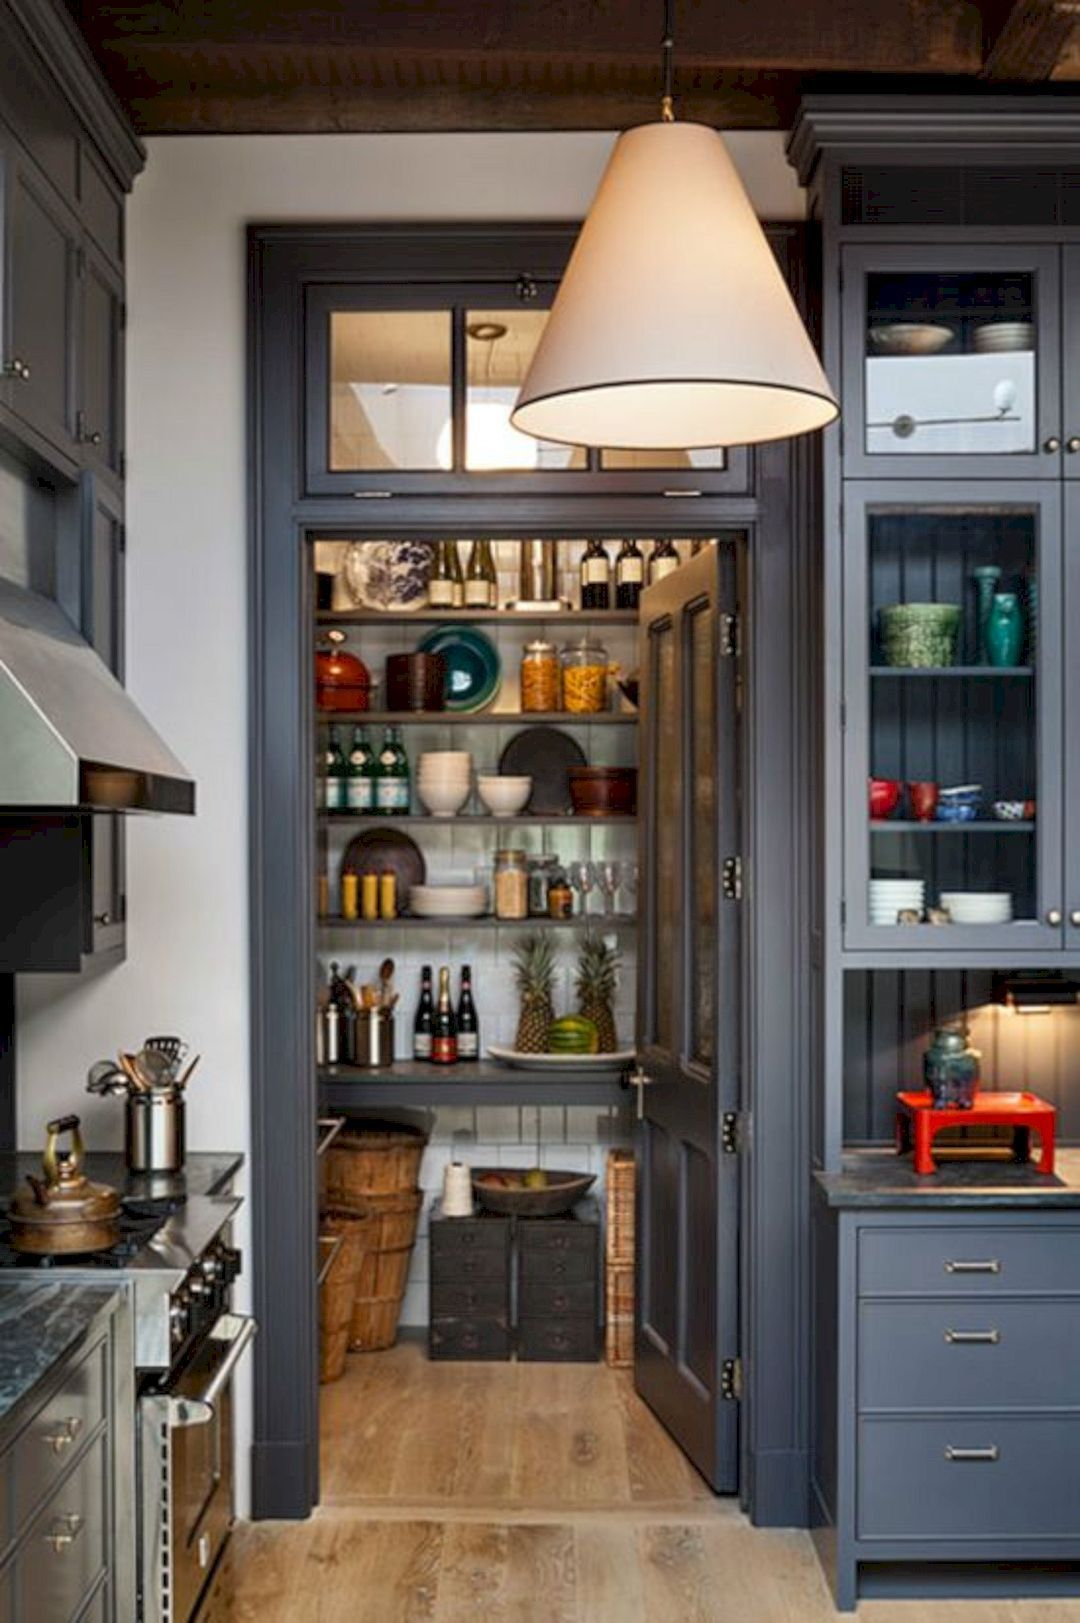 17 Small Townhouse Interior Design Ideas | Gorgeous Interior Ideas on small tile countertop ideas, small galley kitchen plans, small kitchen design, small galley kitchen cabinets, small kitchens southern living, small refrigerator ideas, small kitchen layouts, small breakfast area ideas, small galley kitchen storage, small appliance cabinet for kitchen, small galley kitchen open living room, small galley country kitchen, small galley kitchen decor, small kitchen makeovers, small eat in galley kitchen, small galley style kitchen, small galley kitchen islands, small country kitchen islands, small galley kitchen colors, small galley lighting,